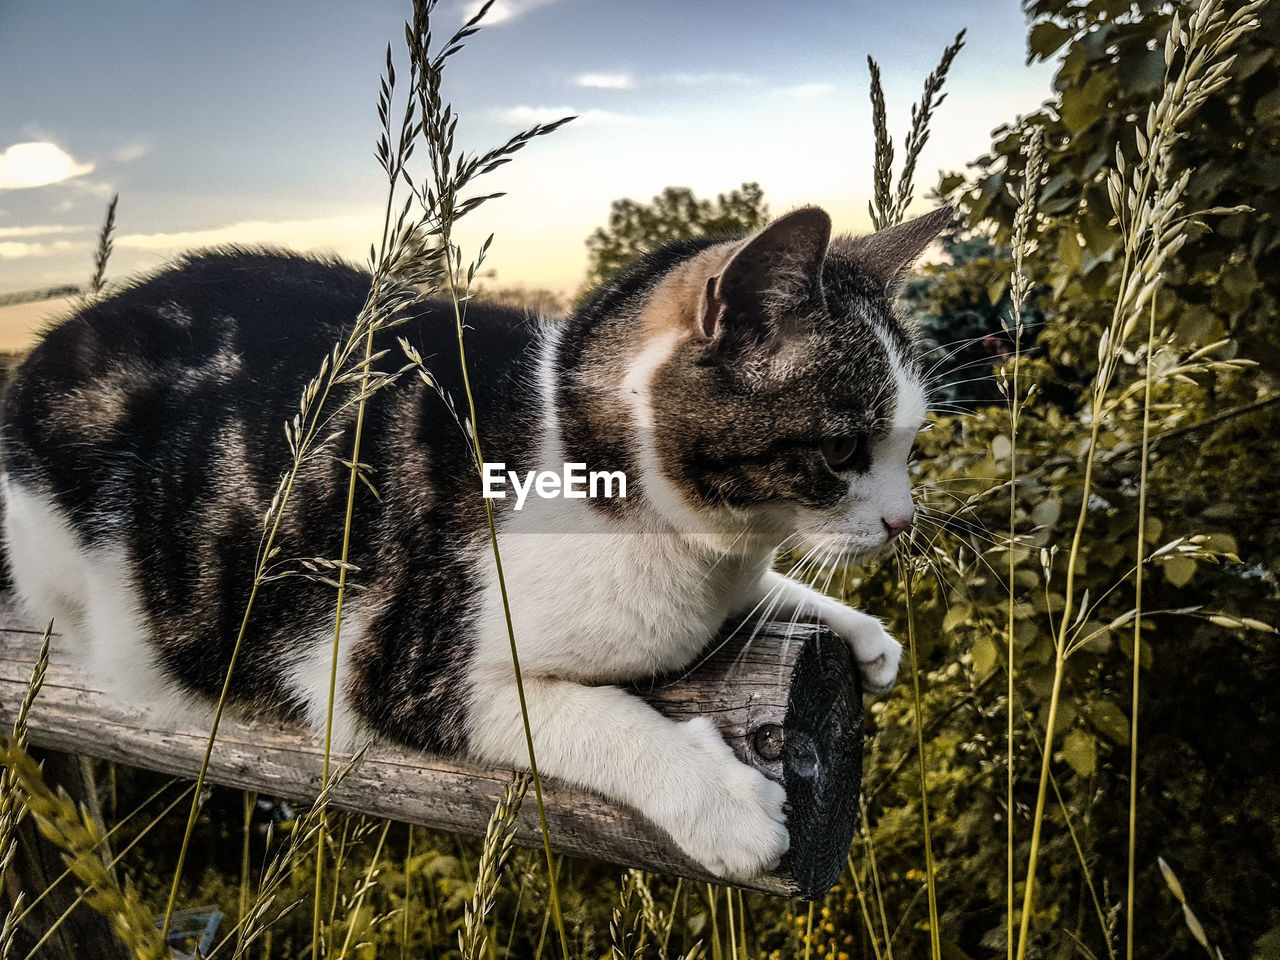 cat, domestic cat, mammal, animal, one animal, feline, domestic, pets, animal themes, domestic animals, vertebrate, plant, grass, relaxation, no people, nature, looking, whisker, close-up, looking away, profile view